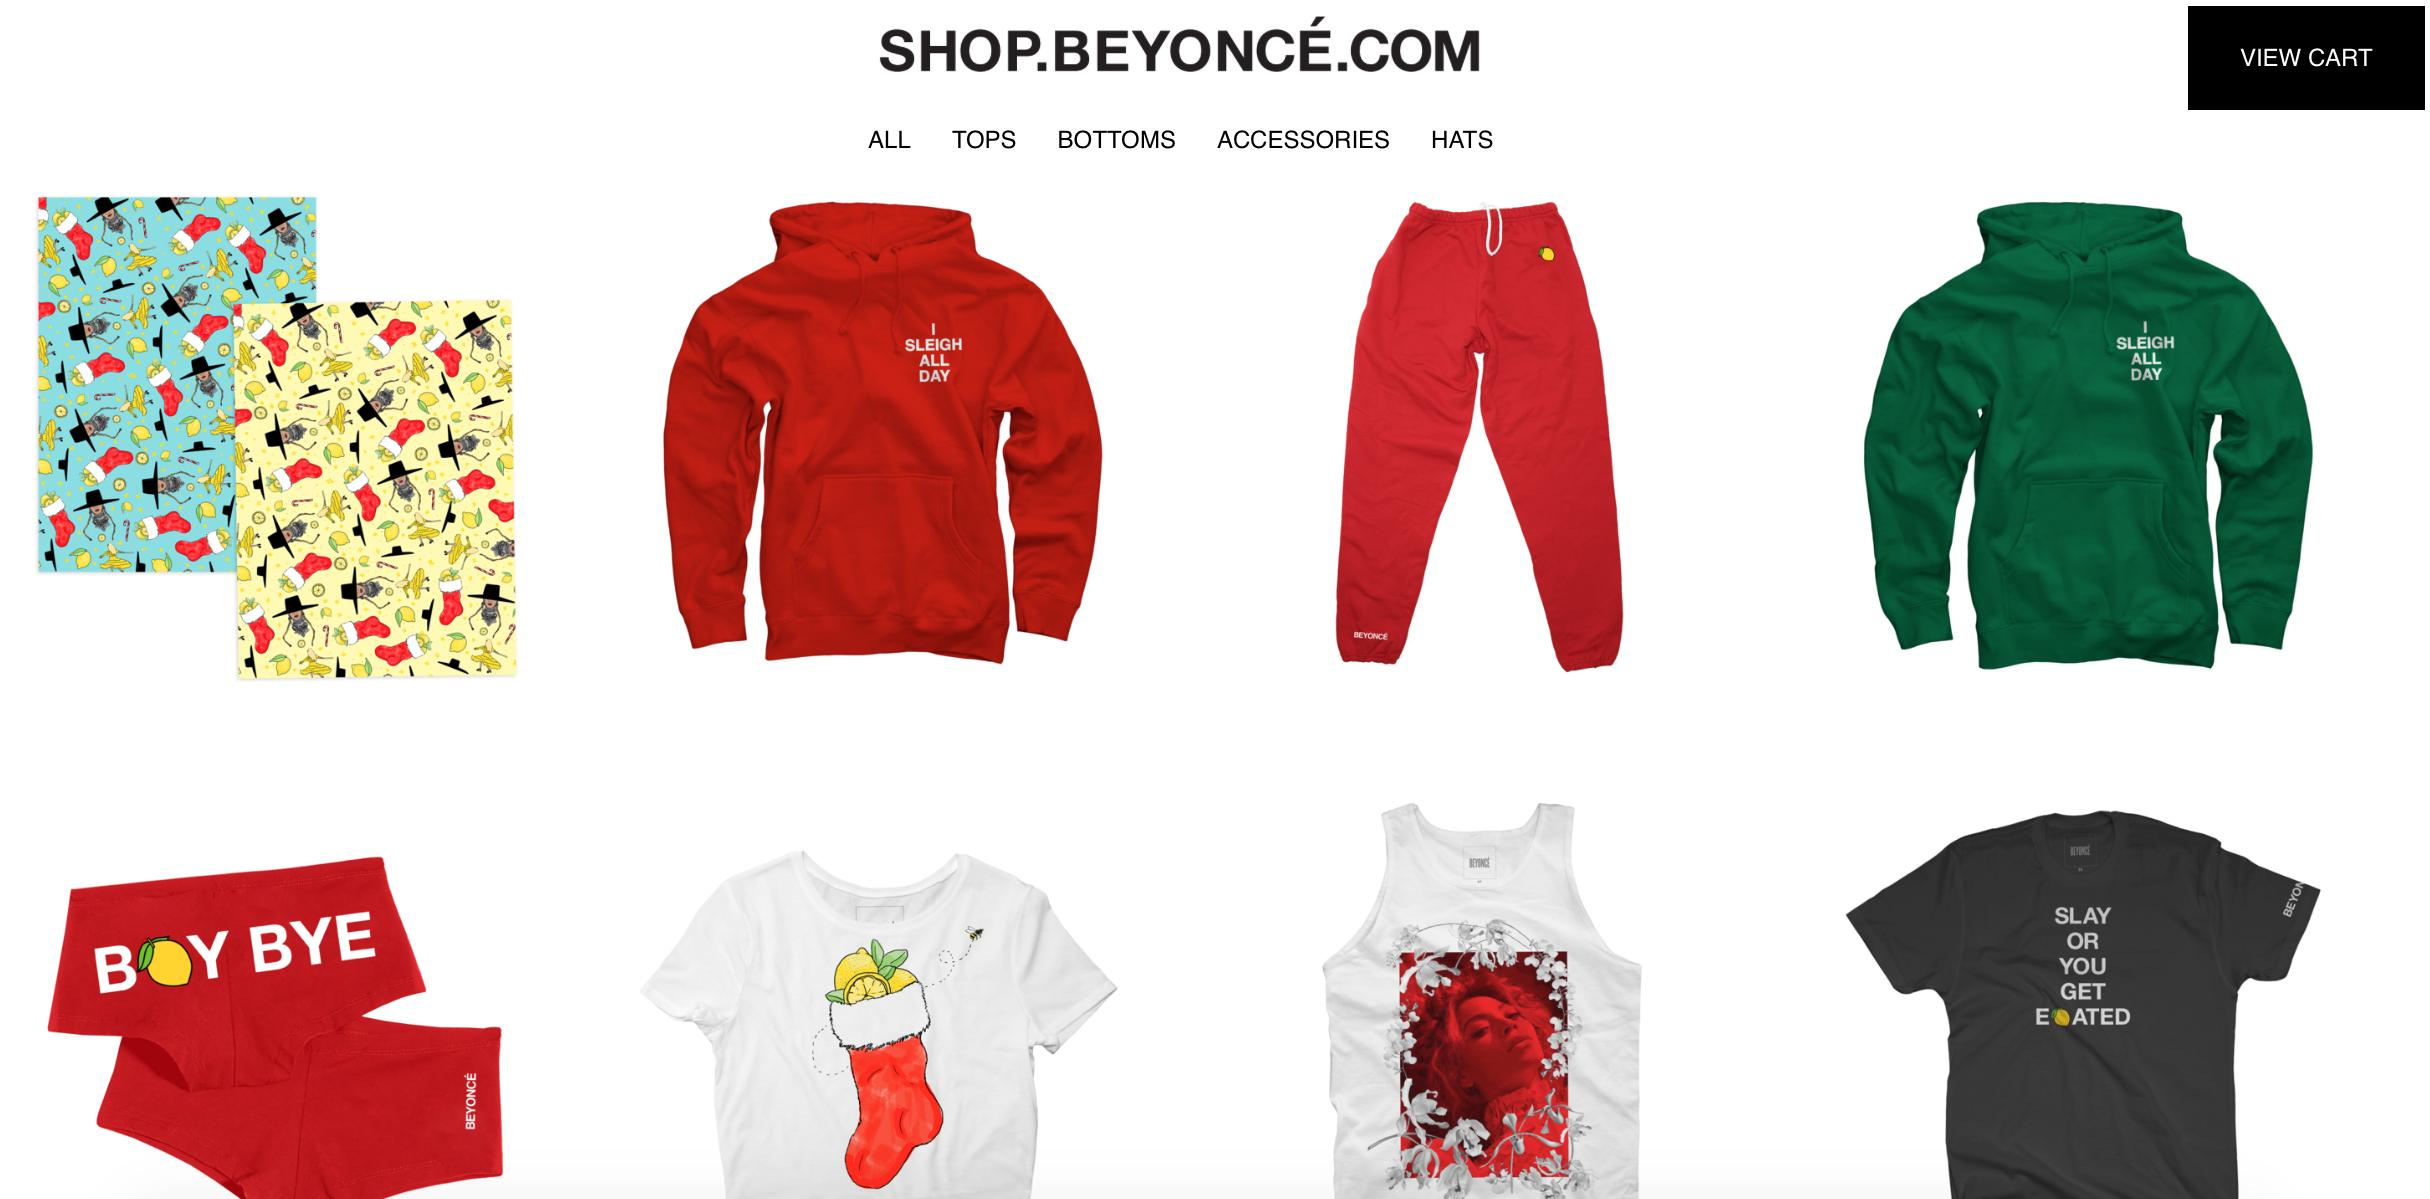 Beyonce Christmas merch